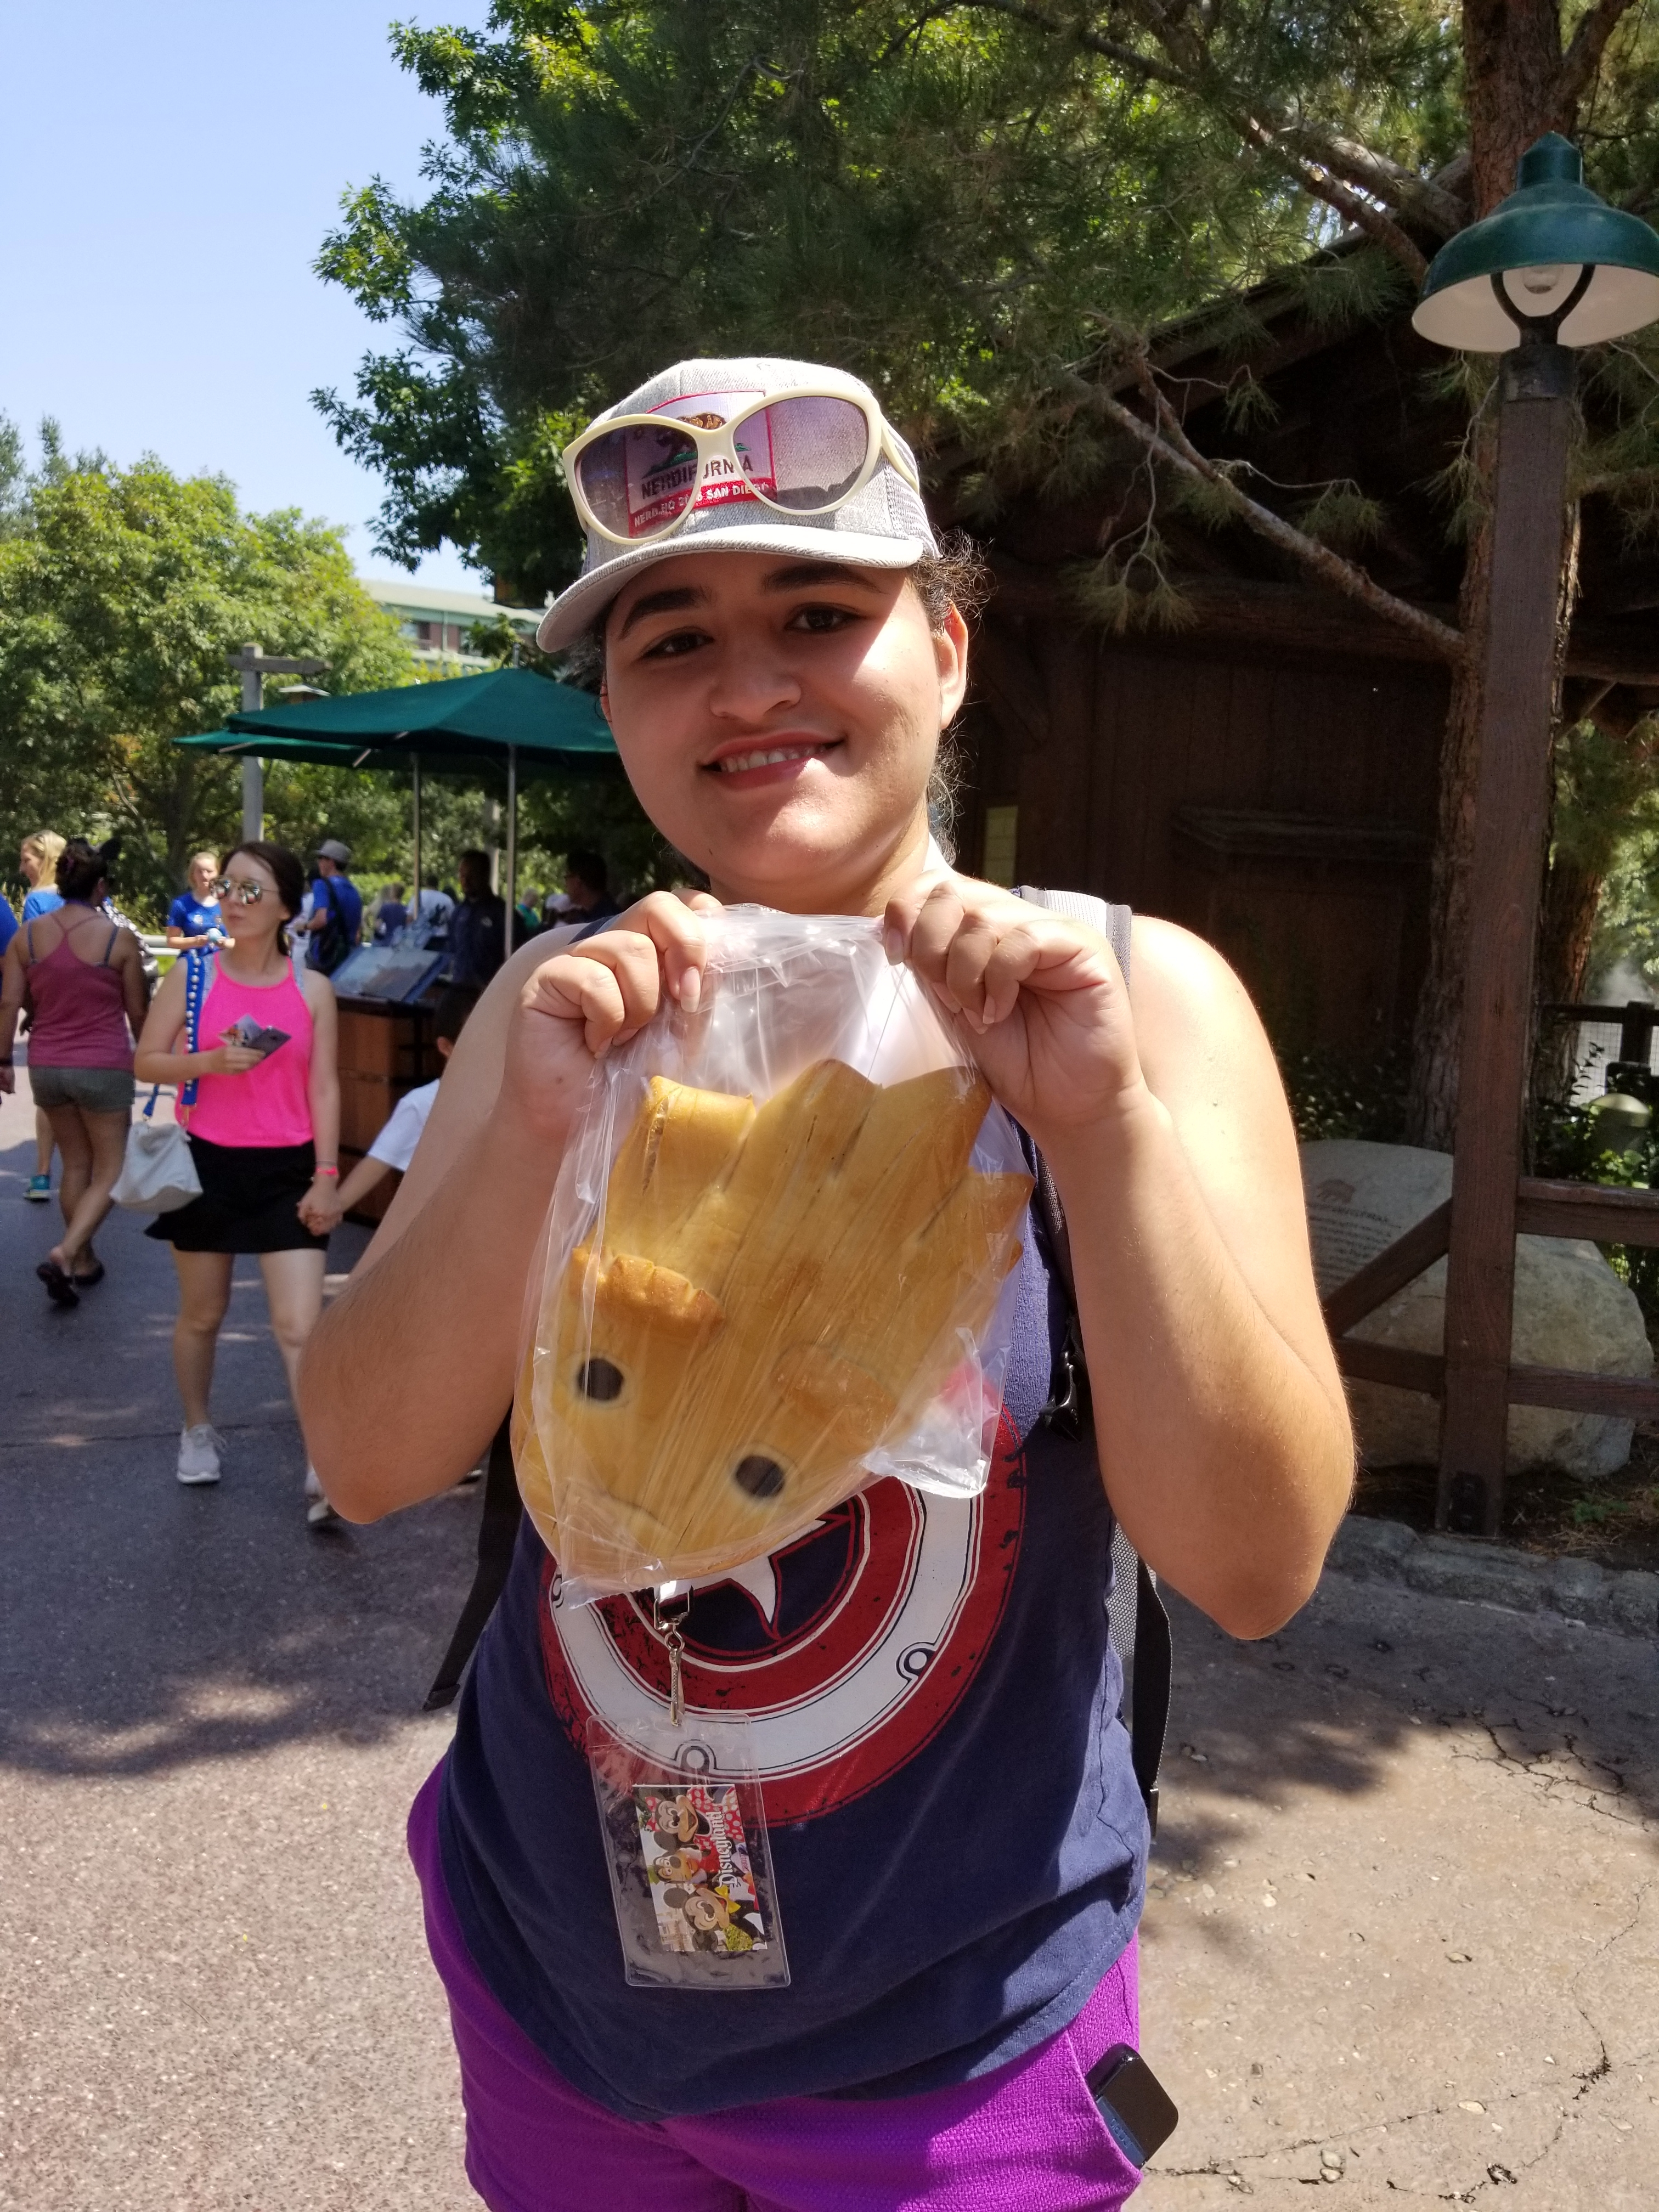 We Found the Groot Bread!